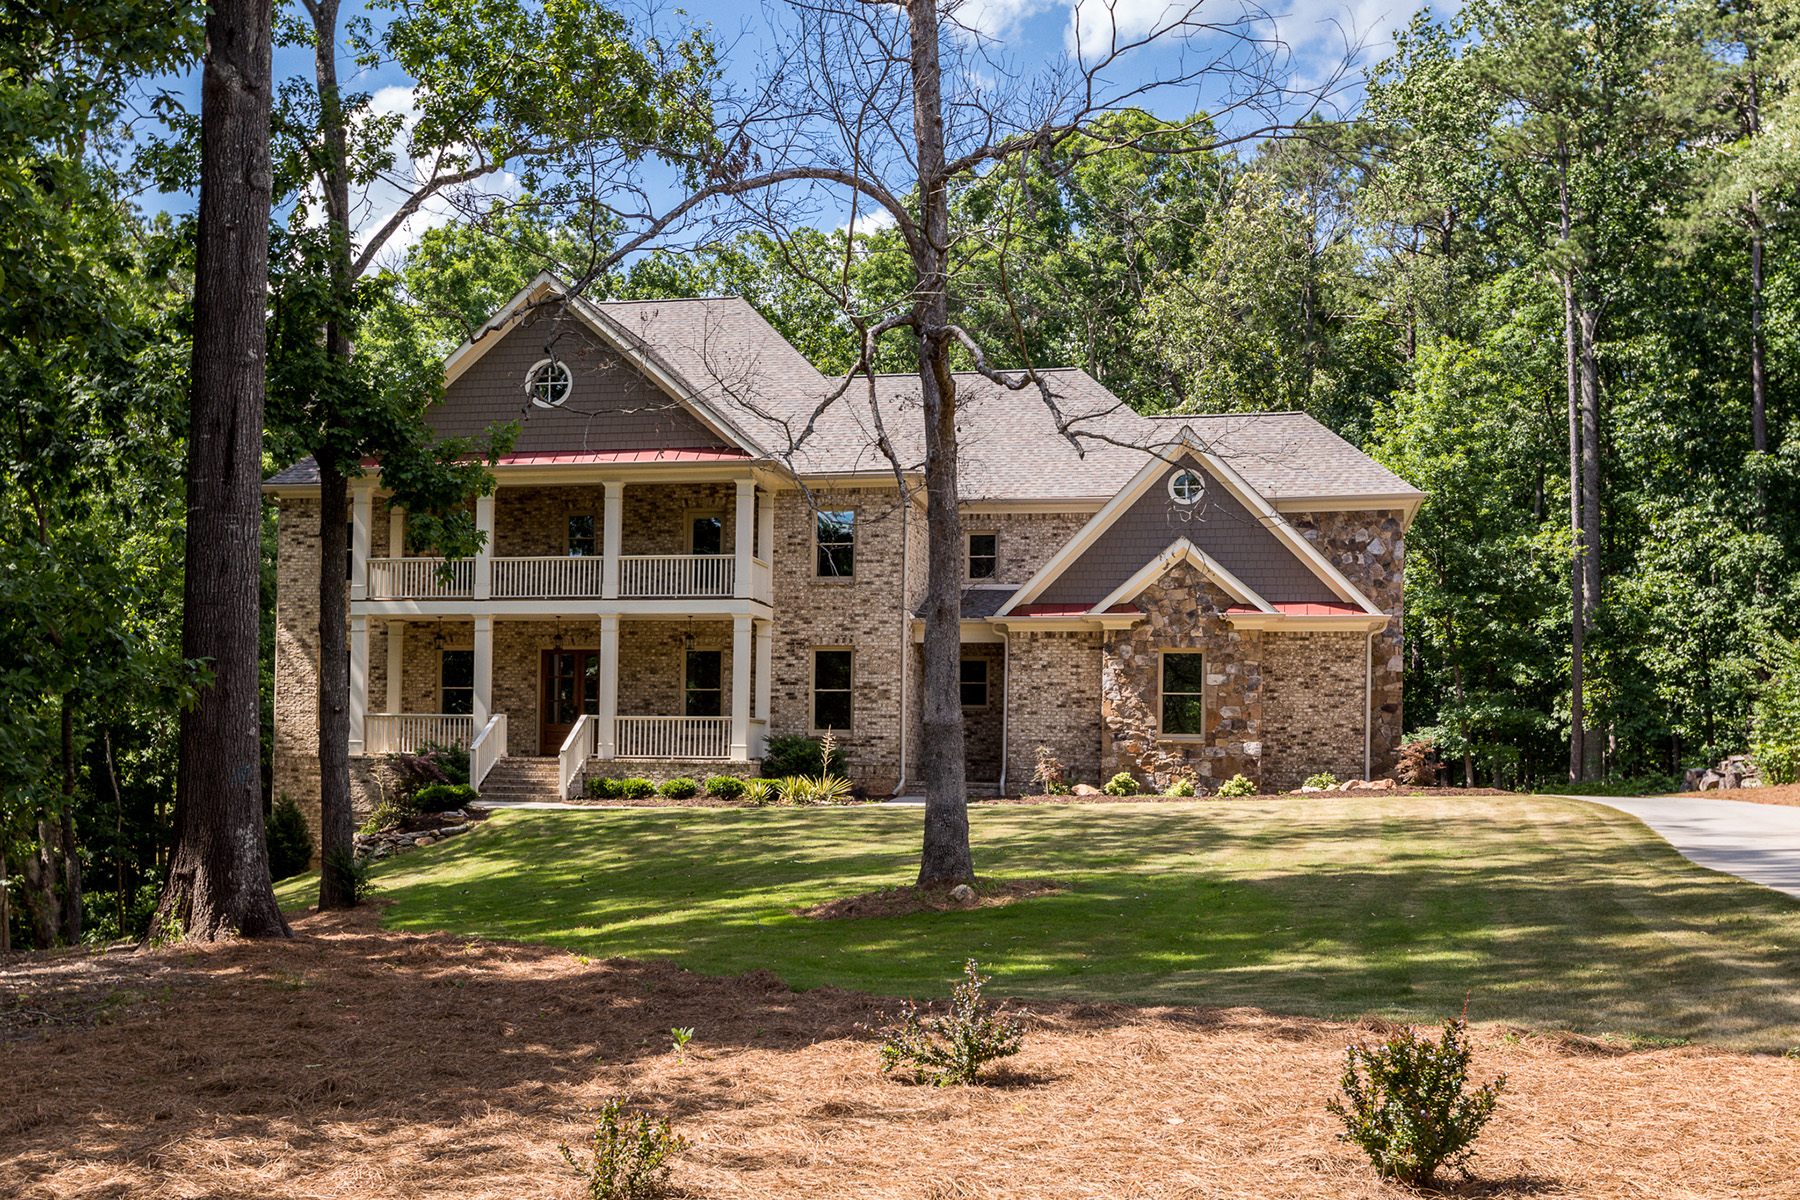 Single Family Homes for Sale at Luxury Living In The Heart Of Roswell On A Two Acre Estate Lot 1025 Jones Road, Roswell, Georgia 30075 United States